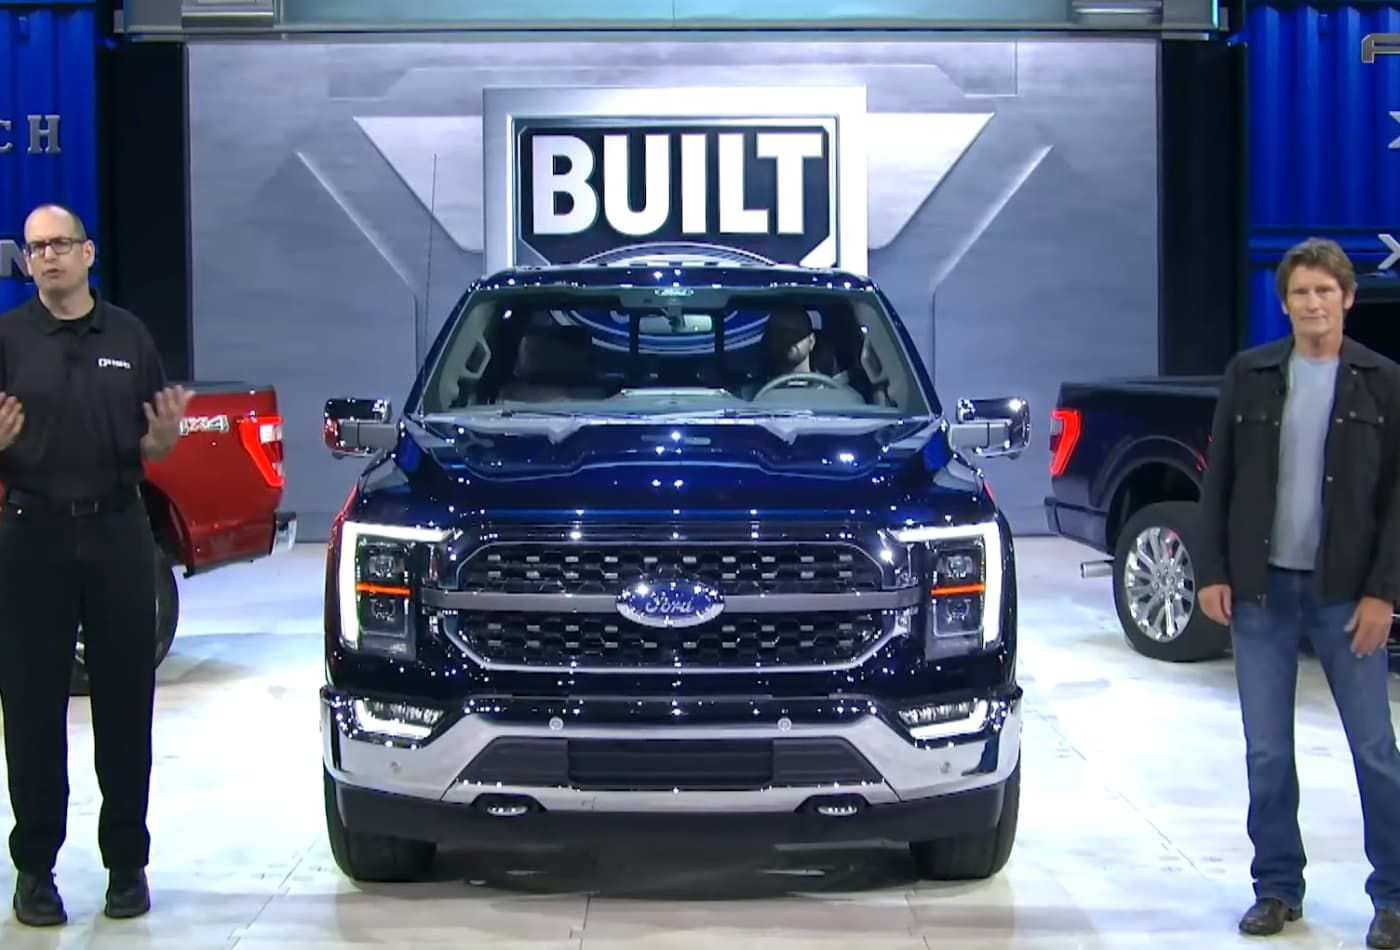 Coronavirus causes automakers to rethink debuts of Ford Bronco, GMC Hummer EV and others